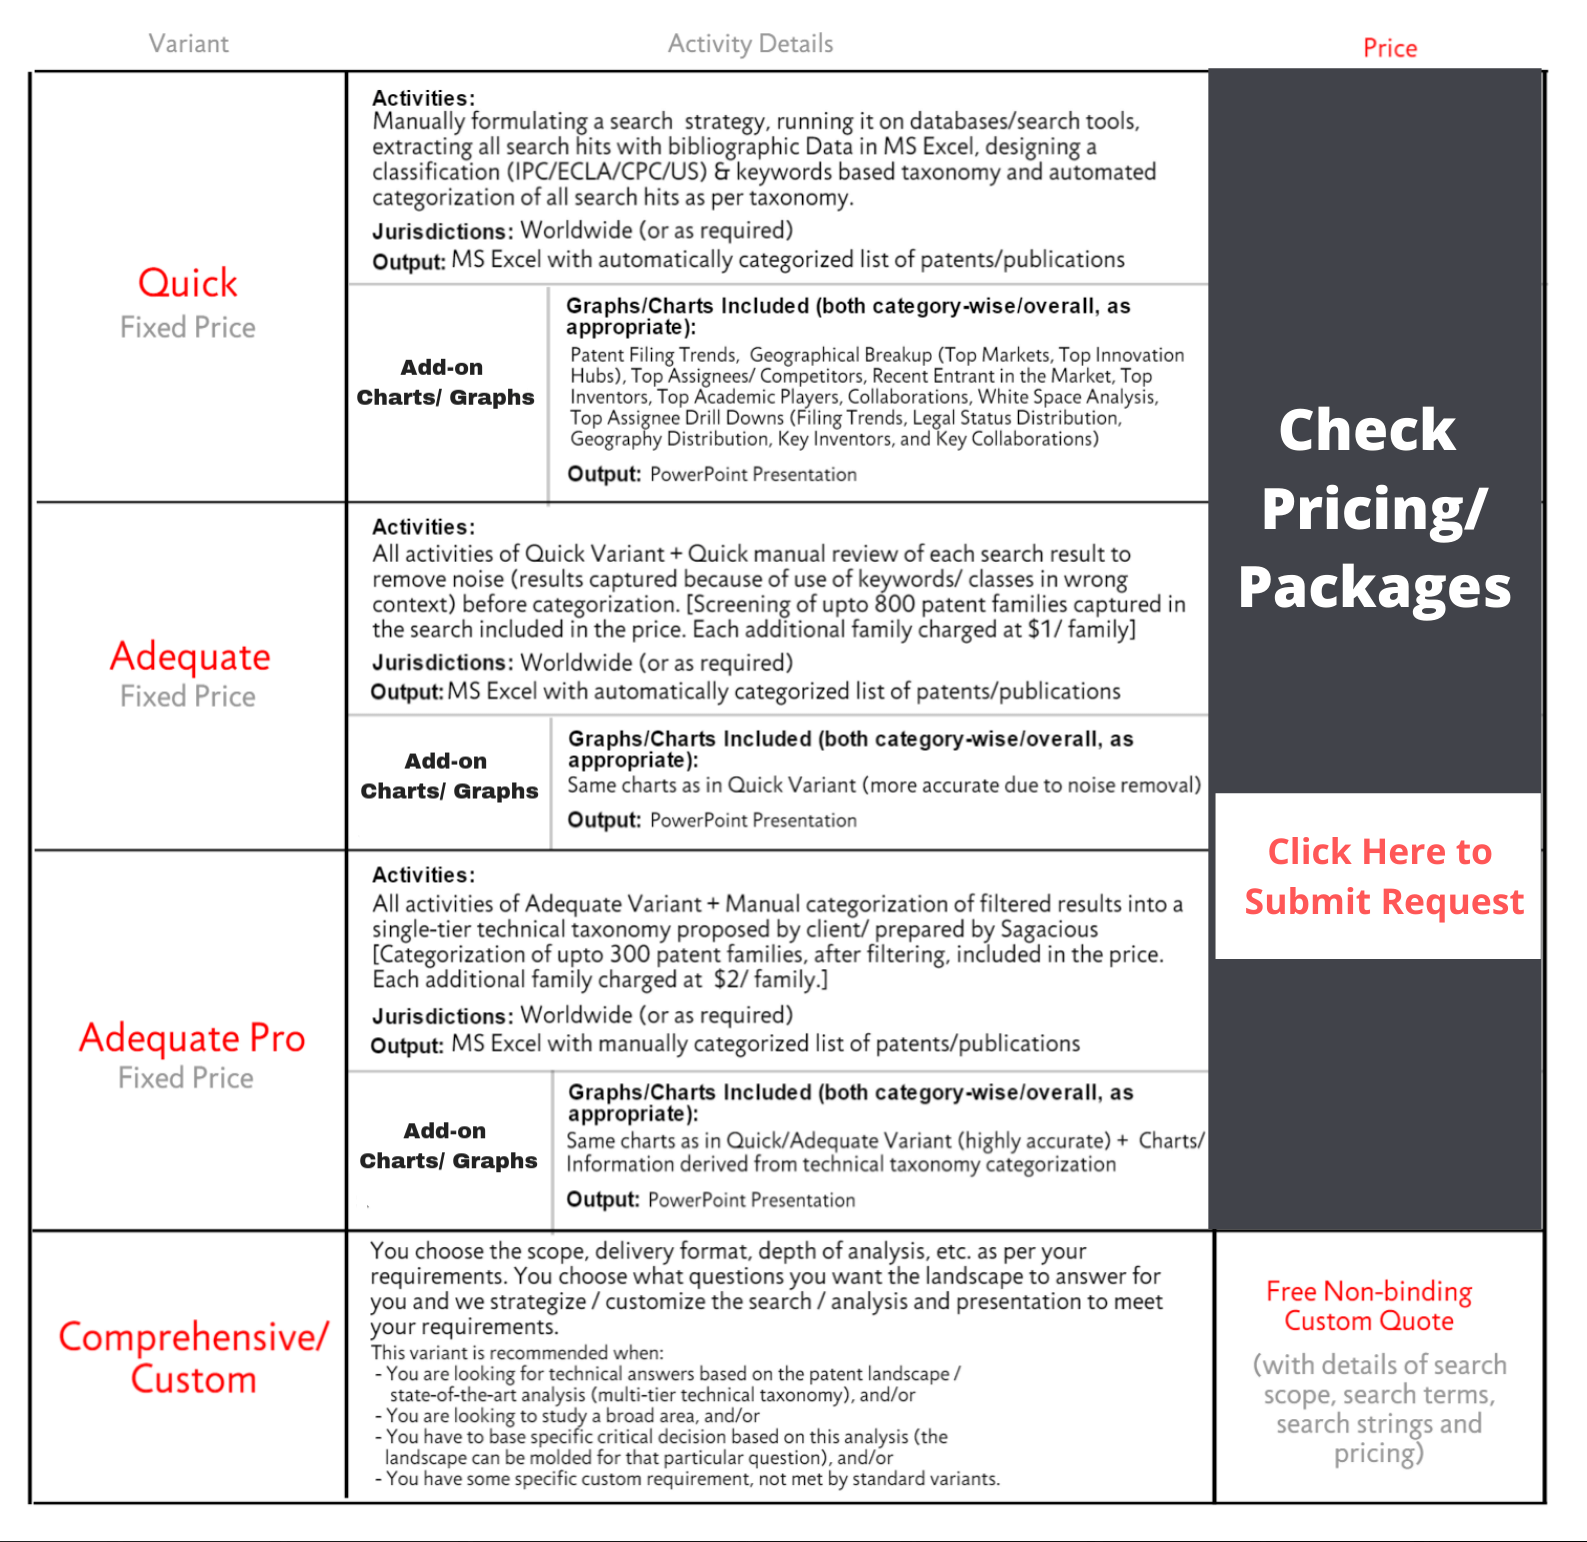 Patent Landscape Analysis Check Pricing_ Packages